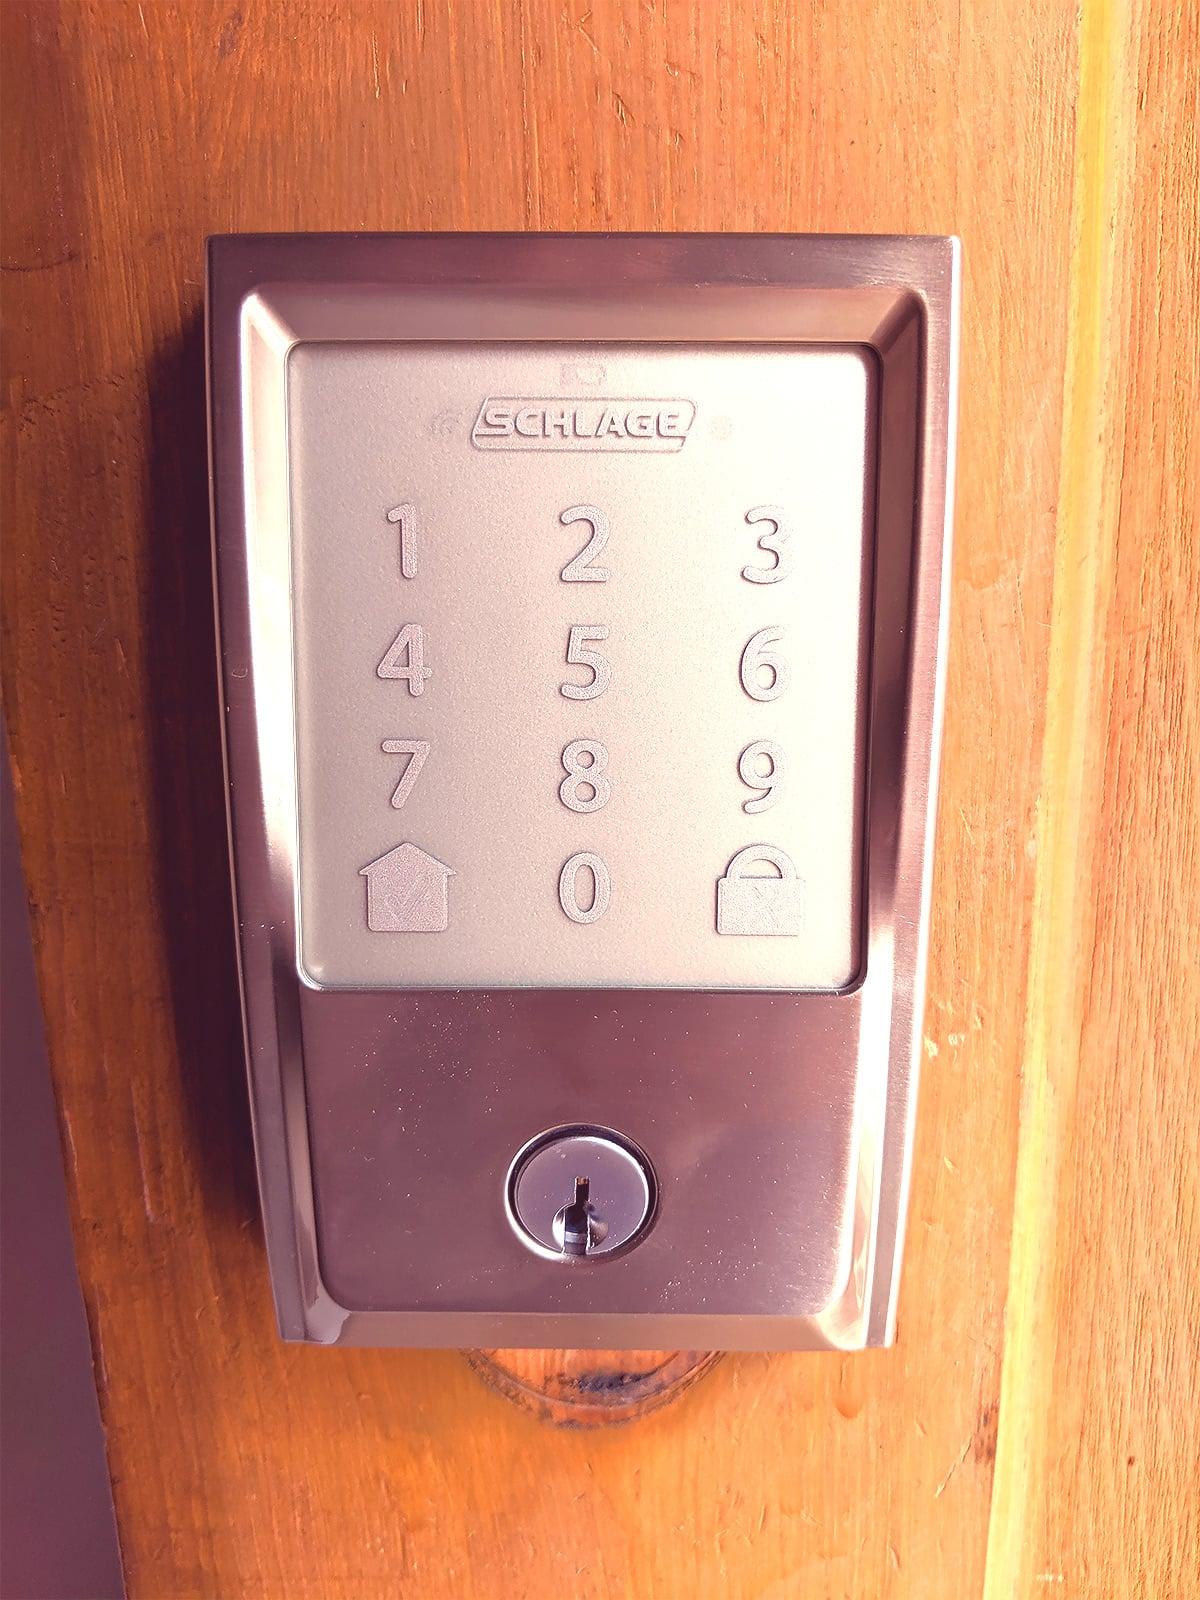 Have the brand new Schlage Encode door lock installed within about 30 minutes. No expertise required.